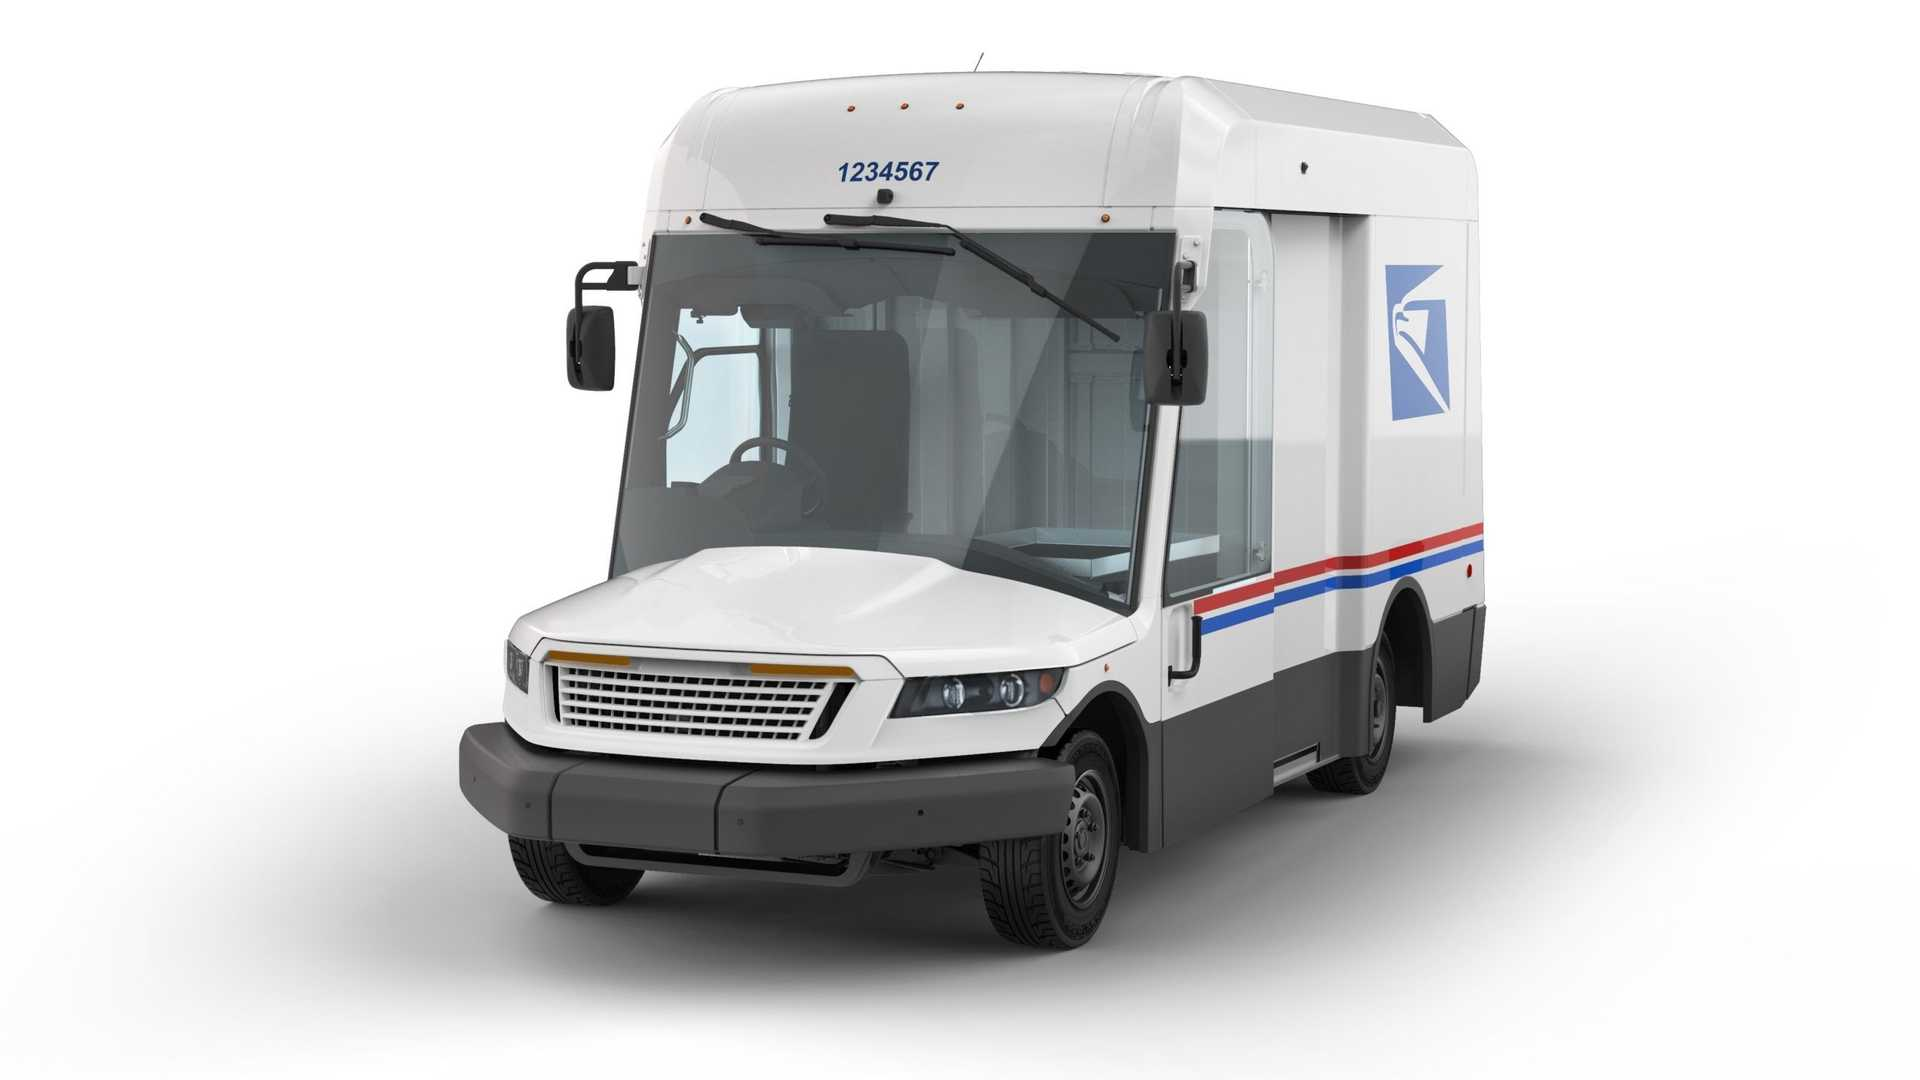 Oshkosh Defense US Postal Service Delivery Truck